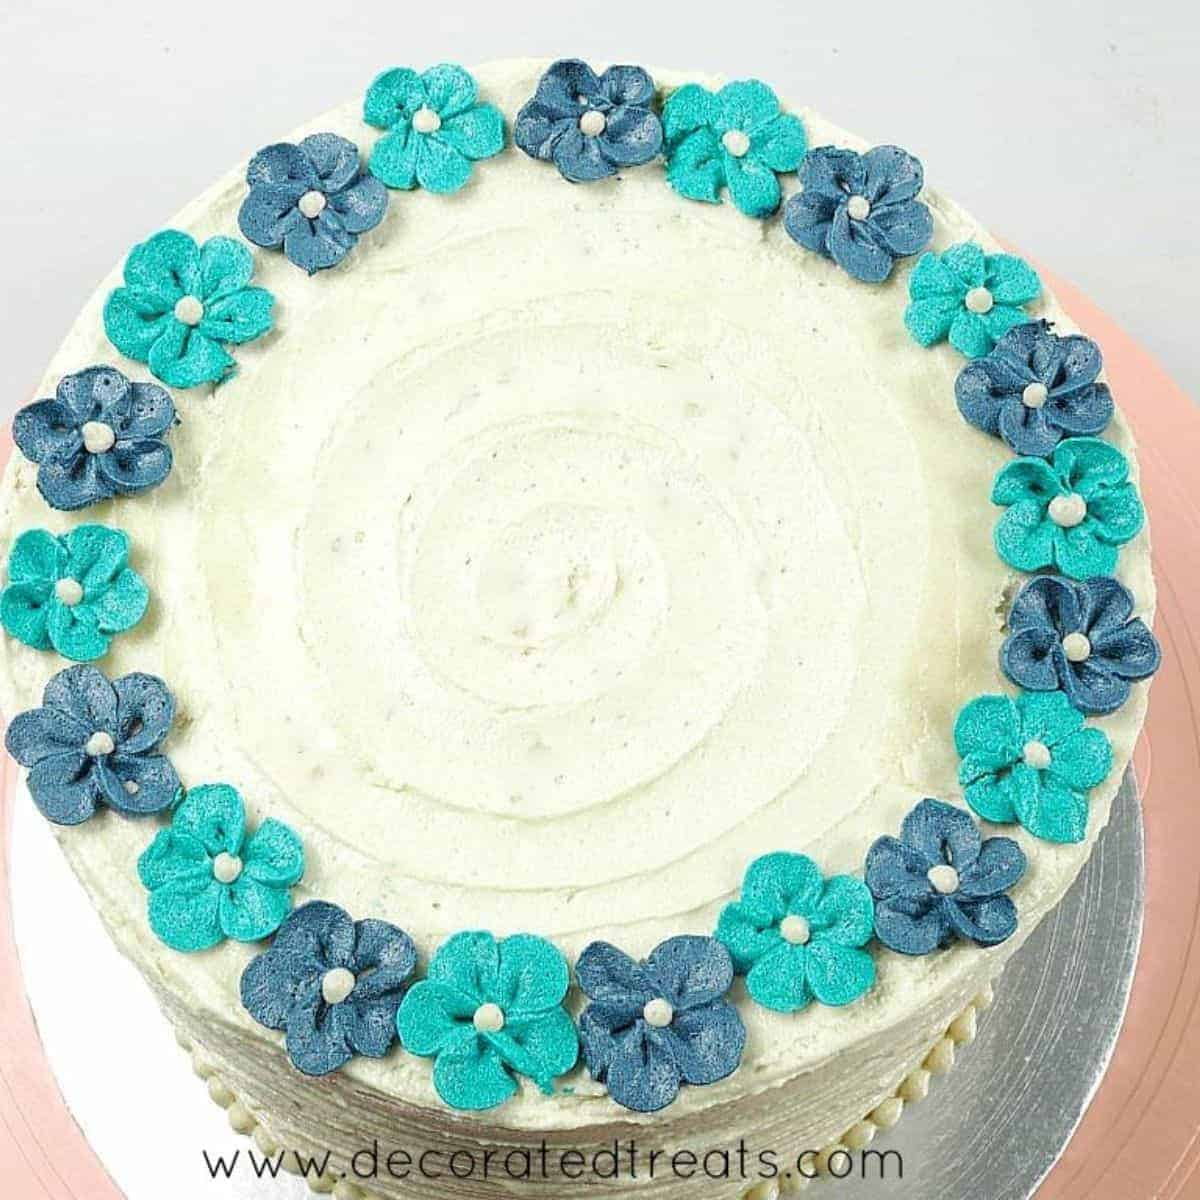 Turquoise and blue buttercream flowers arranged in a circular pattern around the top edges of a round cake covered in buttercream